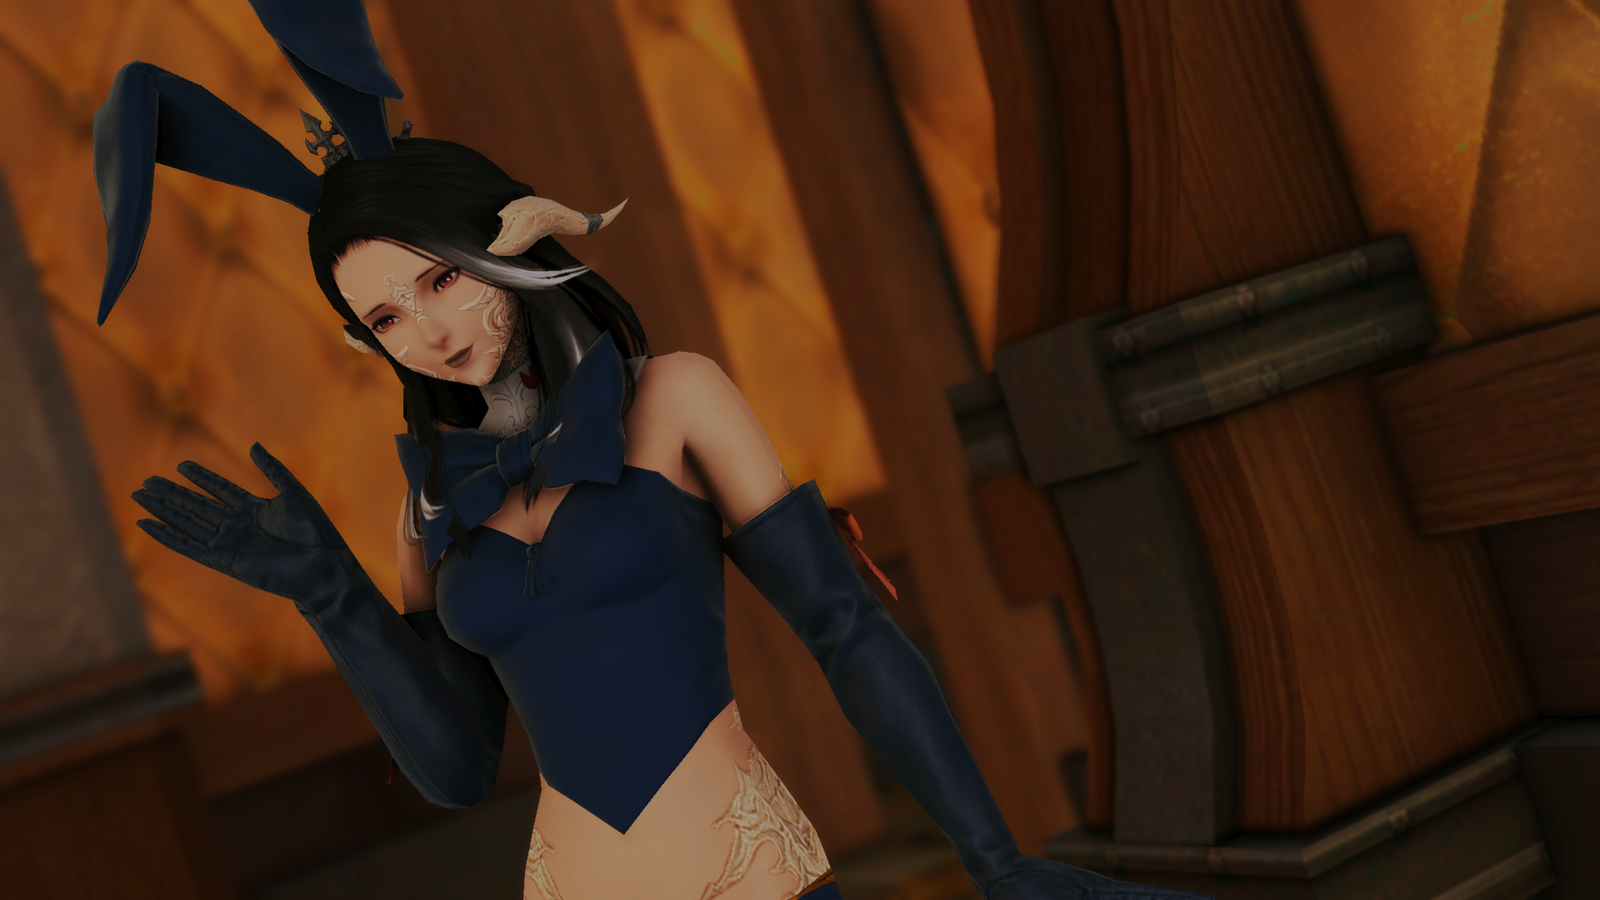 ffxiv_dx11_2019-02-04_22-50-24.png